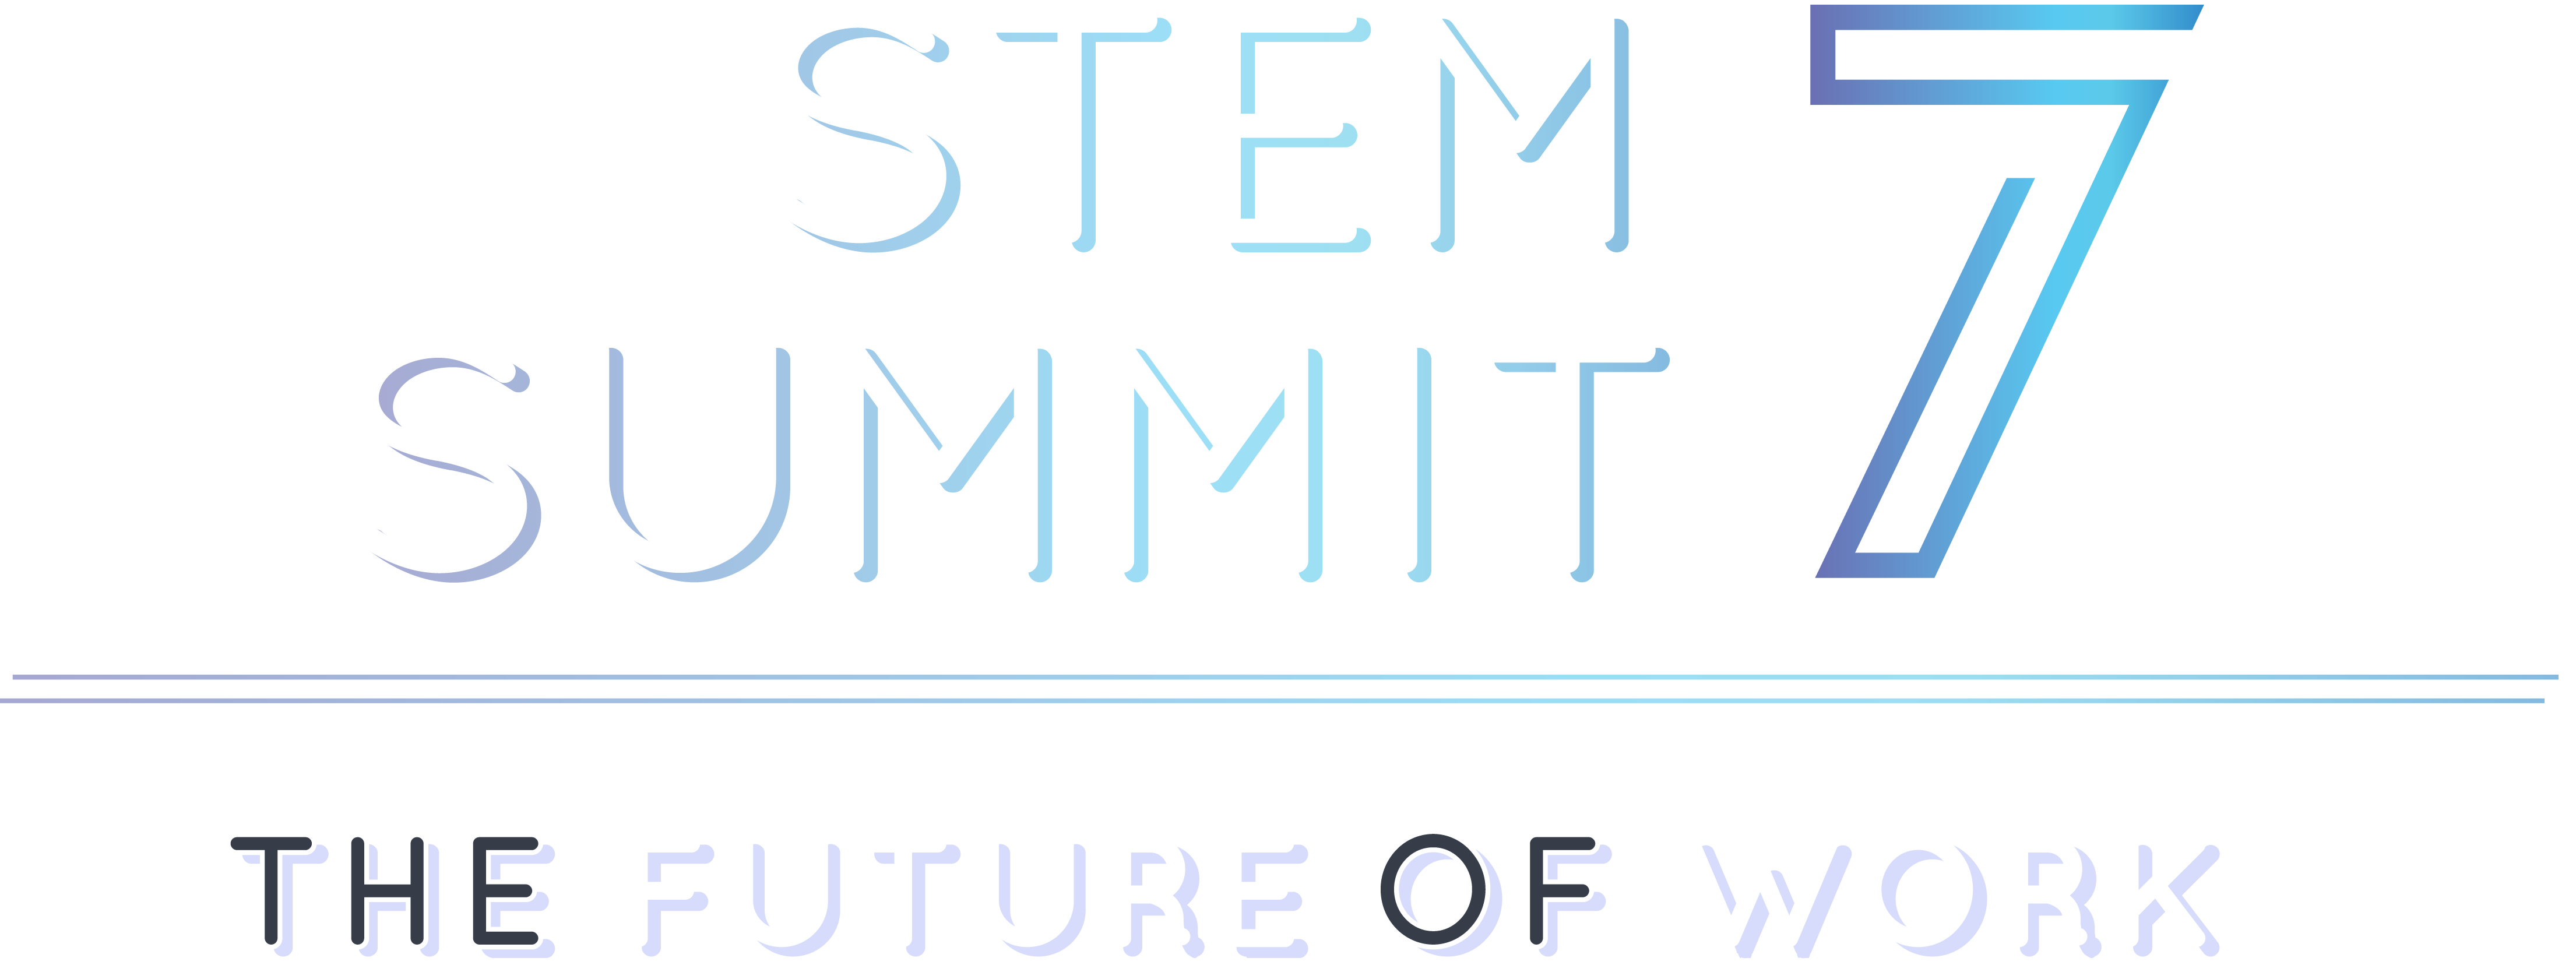 Stem Summit 7 logo